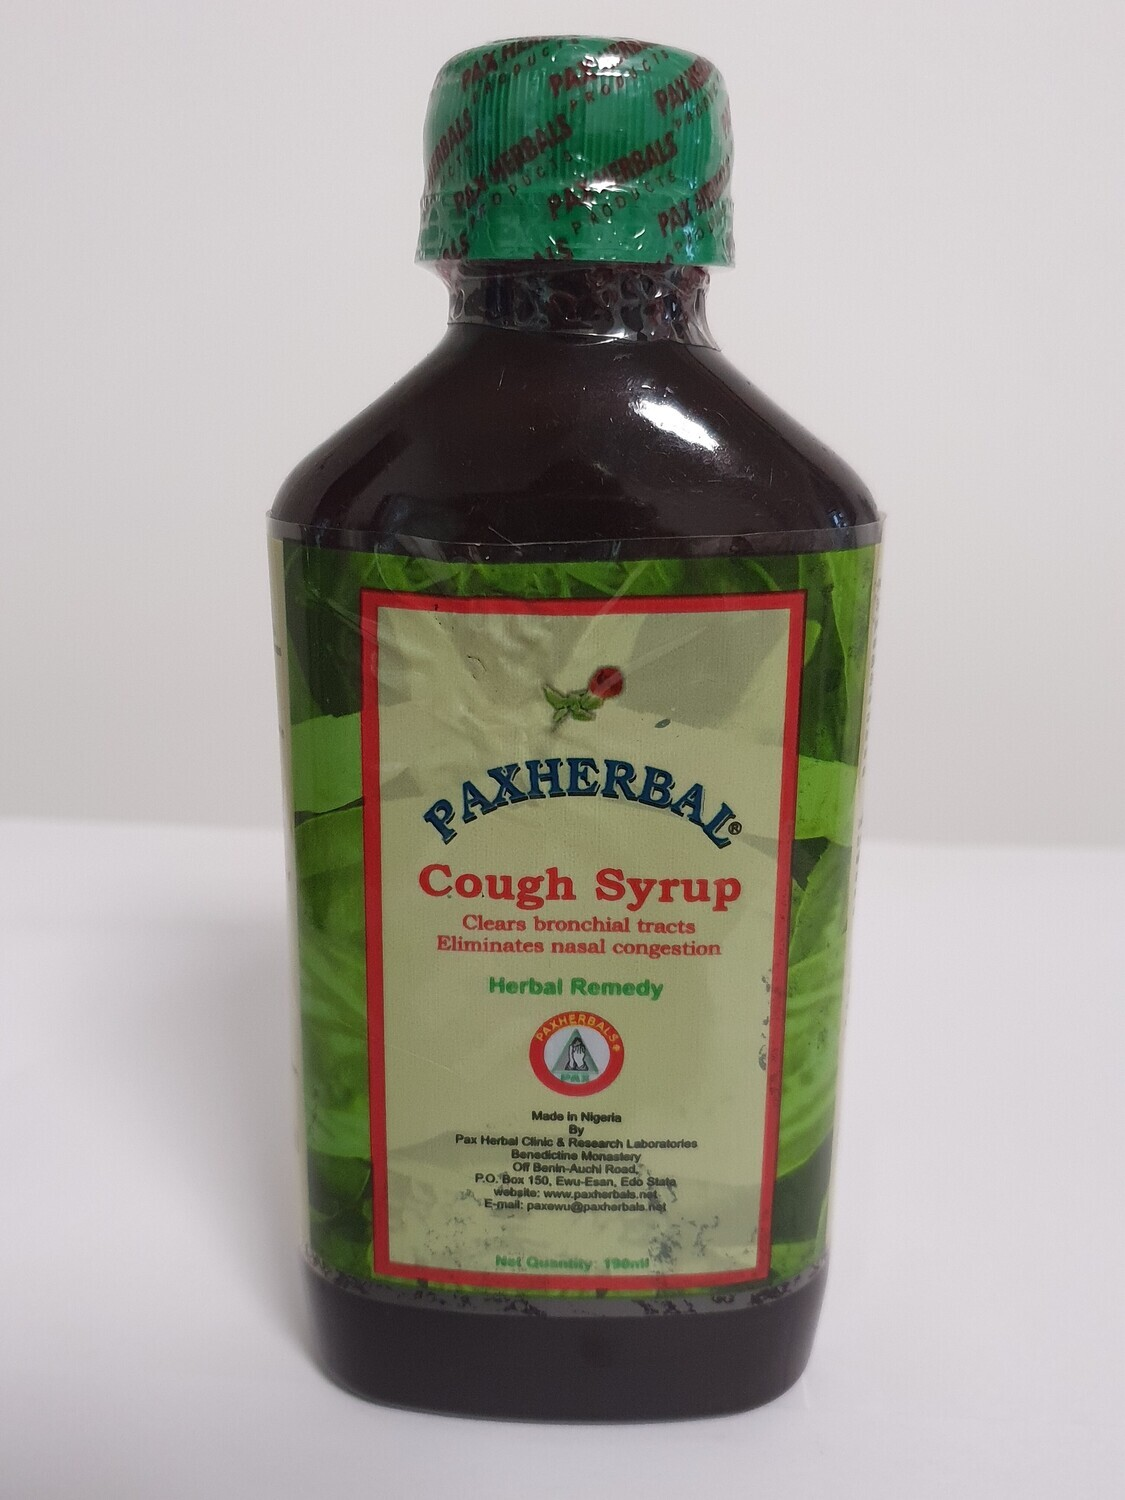 PAXHERBAL Cough Syrup Herbal Remedy-190ml